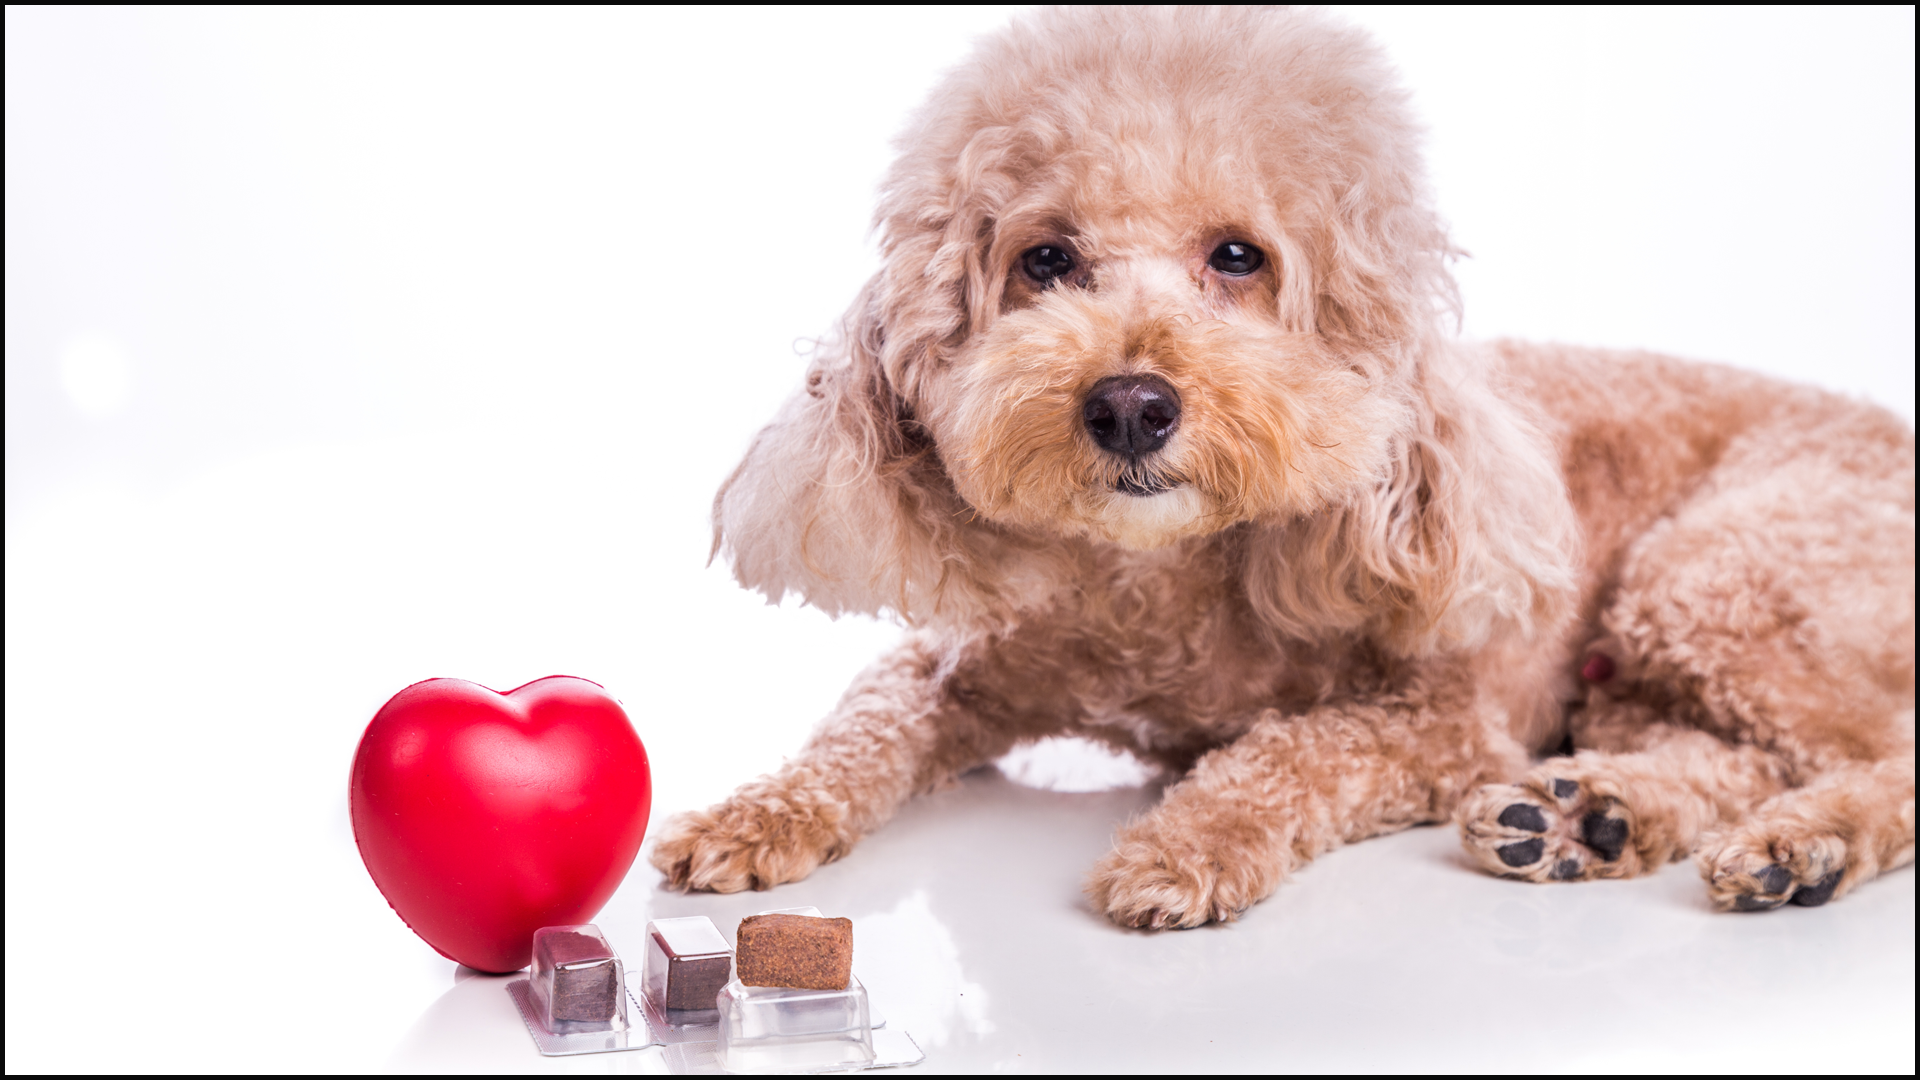 5 Heartworm Facts You Need to Know